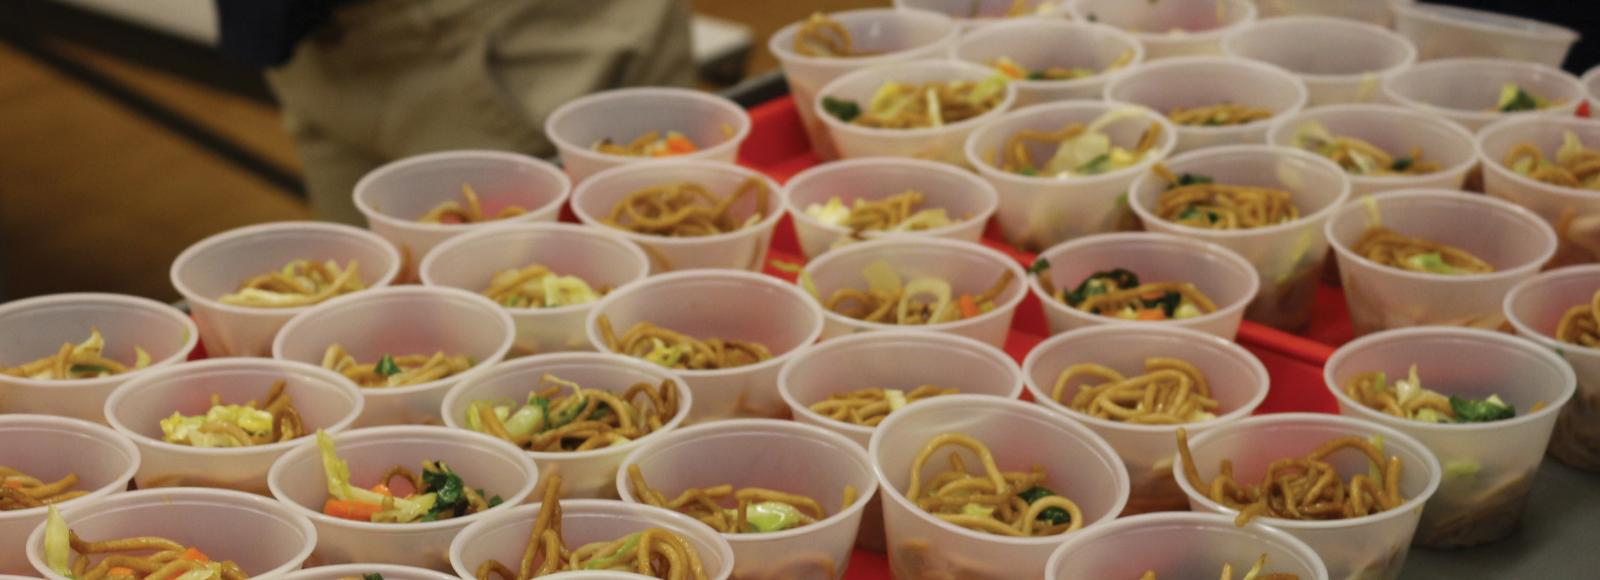 Plastic cups hold samples of noodles, cabbage, and carrots.